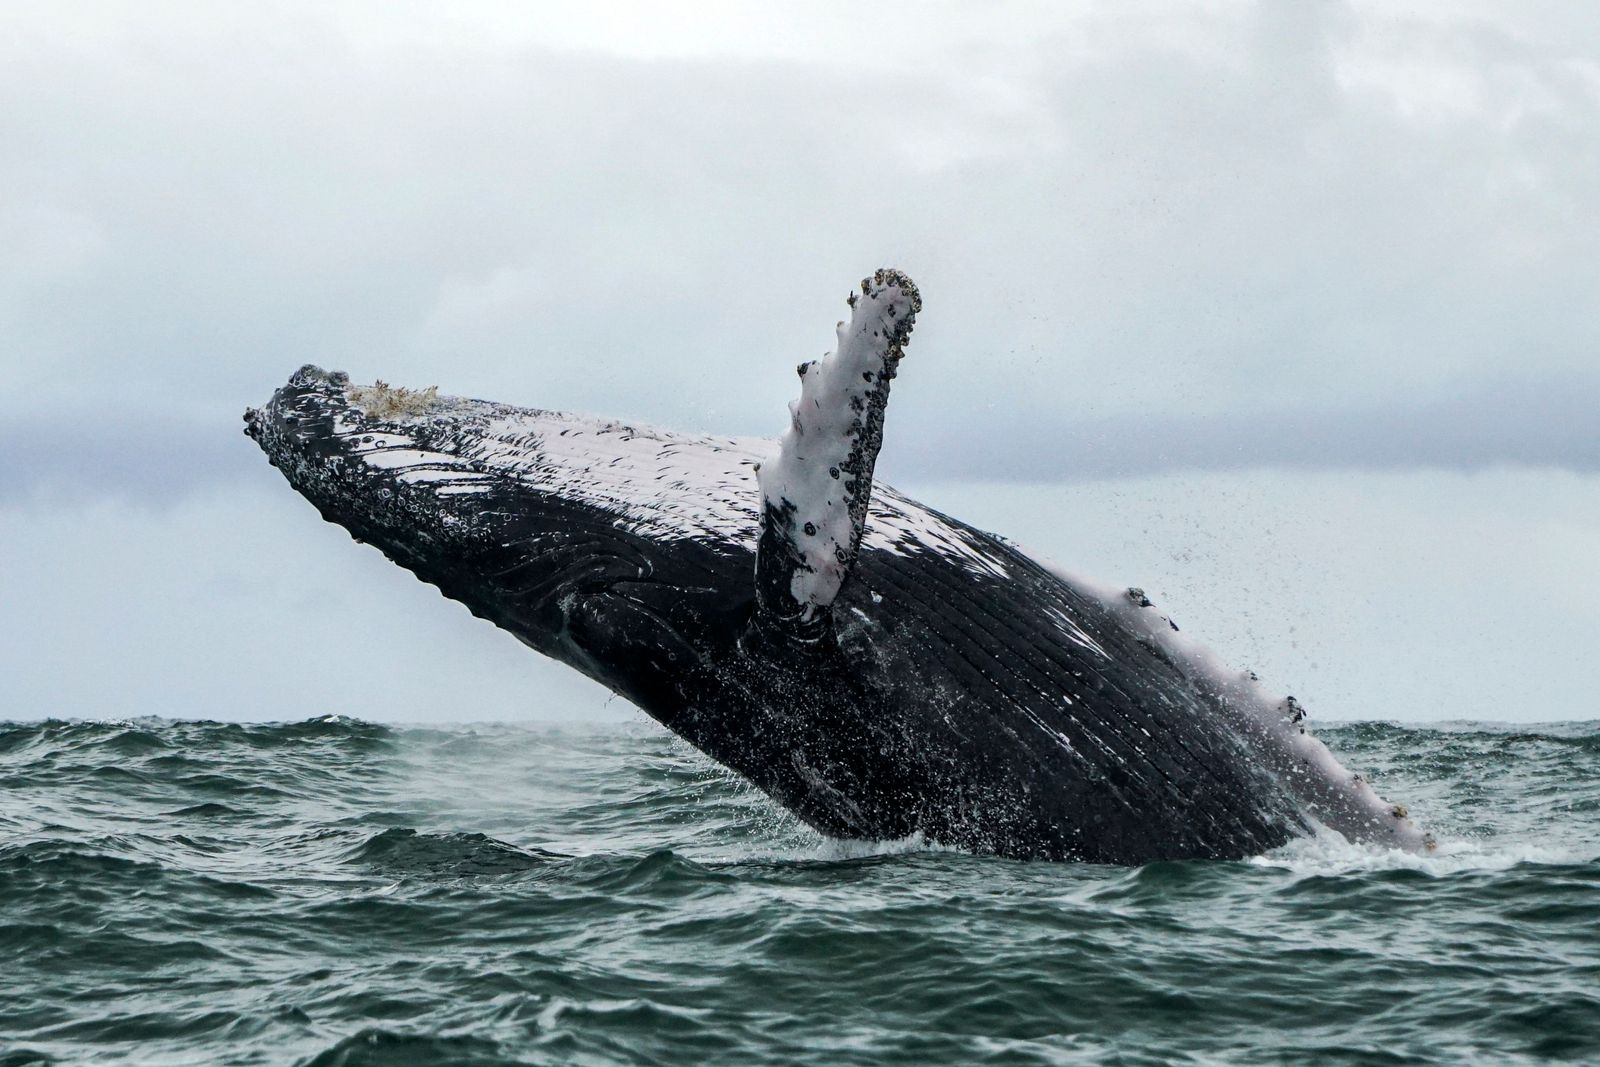 COLOMBIA-WILDLIFE-WHALE